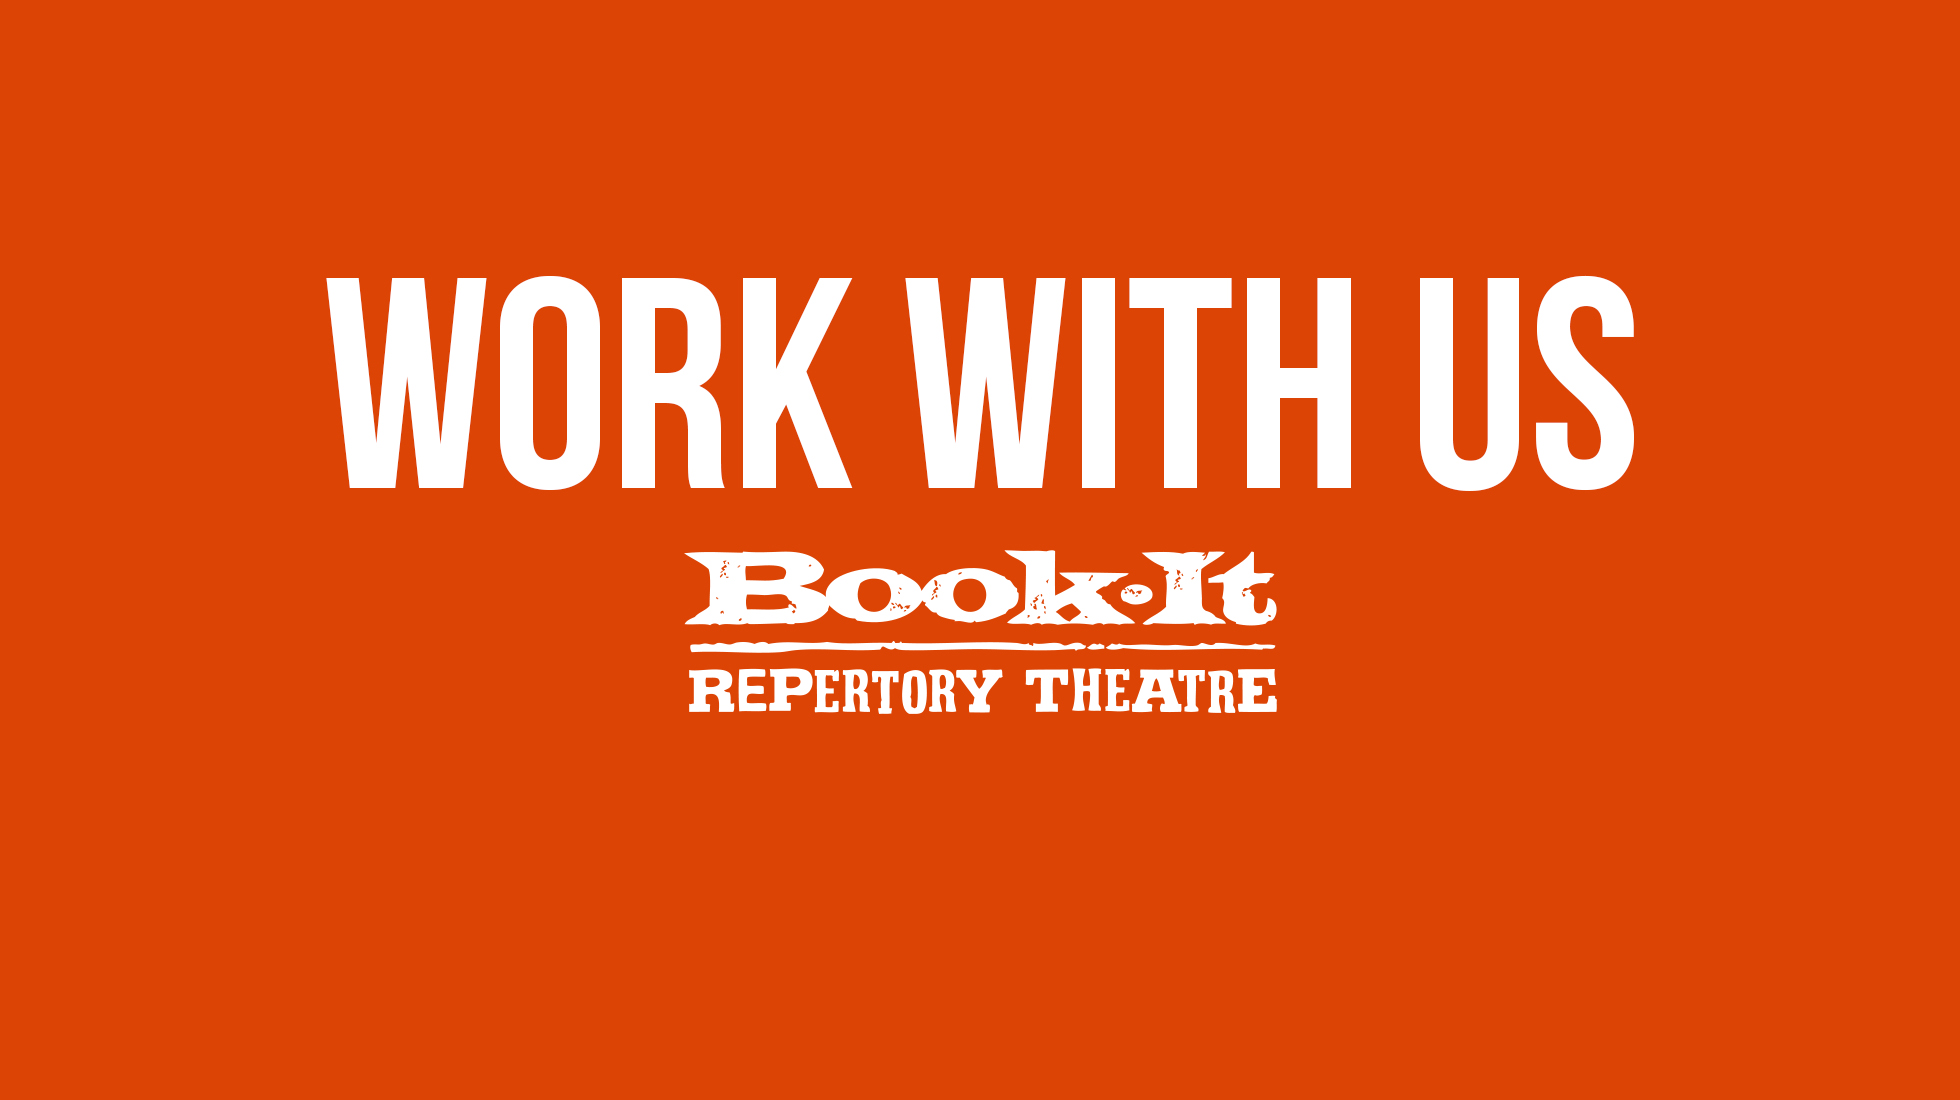 Work With Us at Book-It